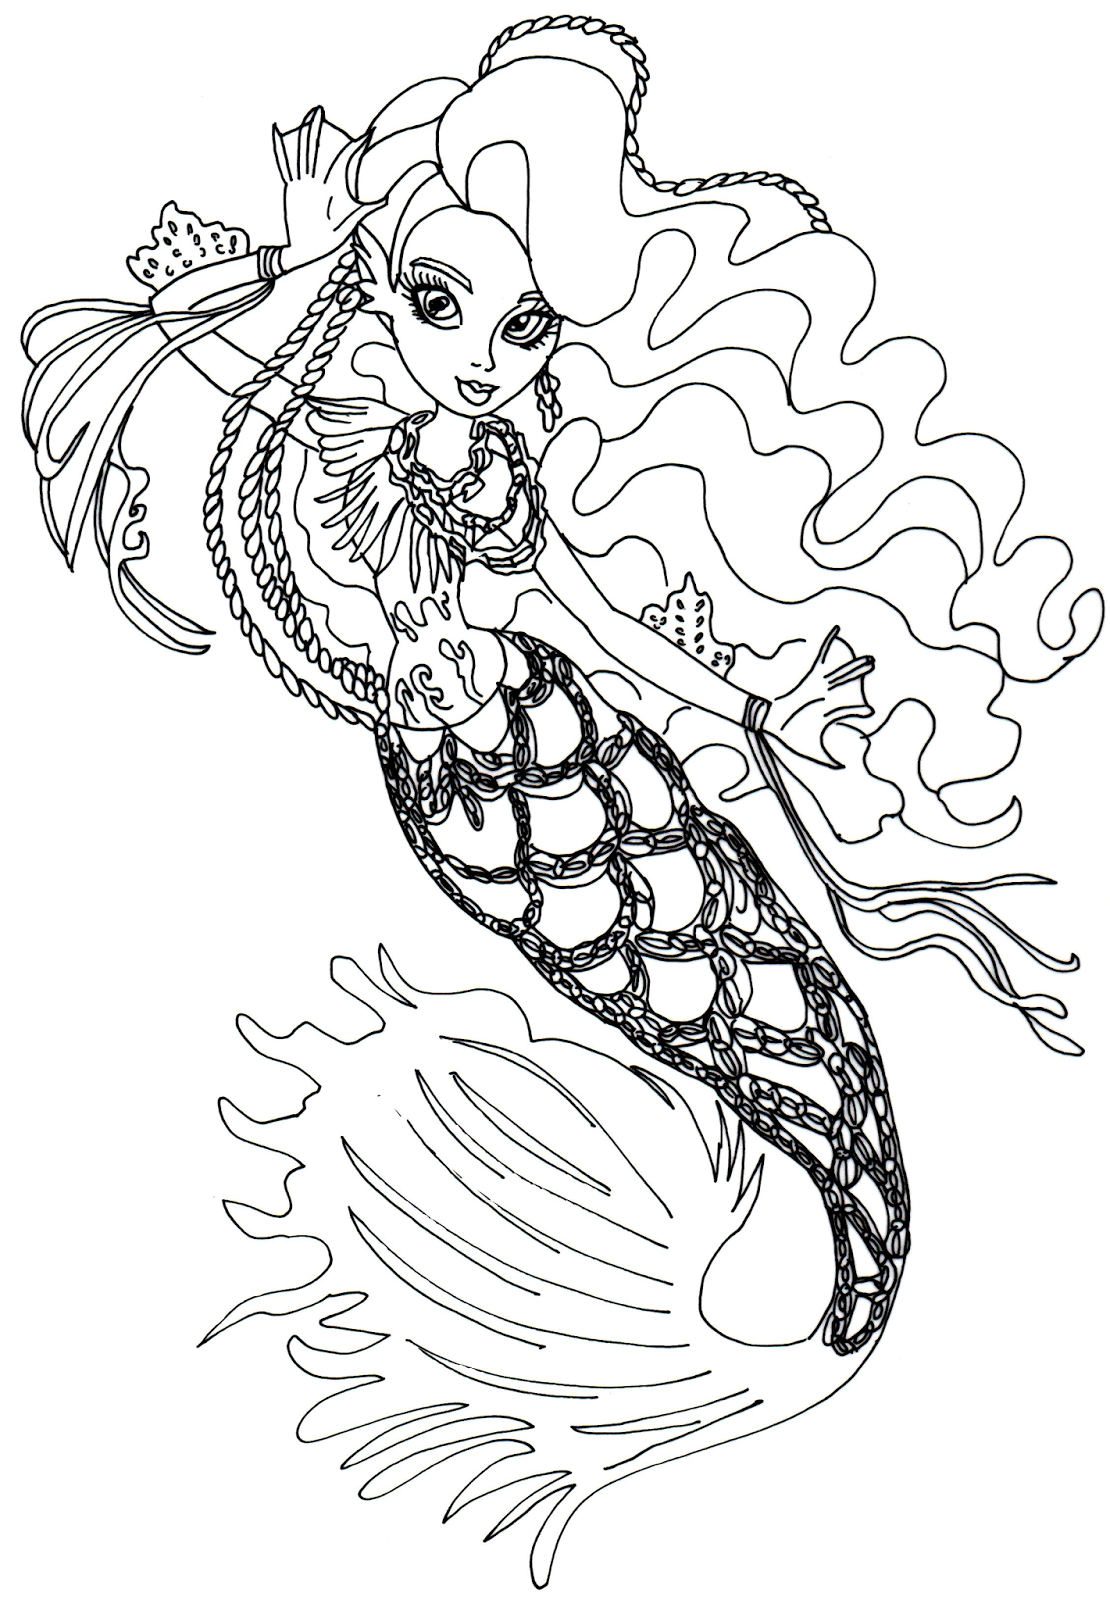 Free Printable Monster High Coloring Pages June 2014 Print High Coloring Pages